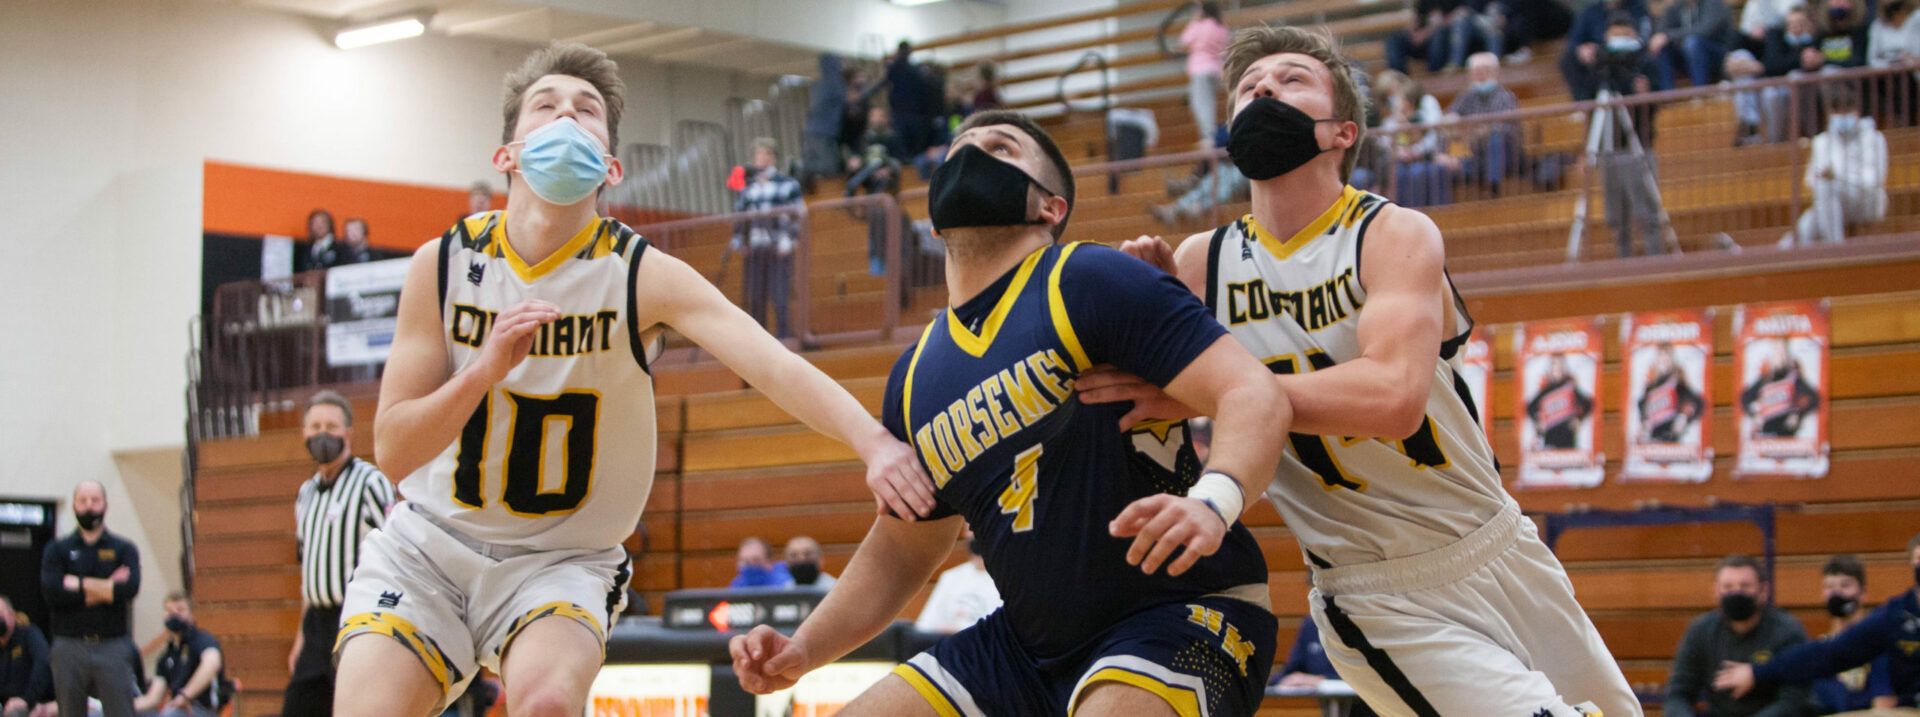 North Muskegon's fun 'Cinderella' run ends with a big loss to Grand Rapids Covenant Christian in Division 3 regional final